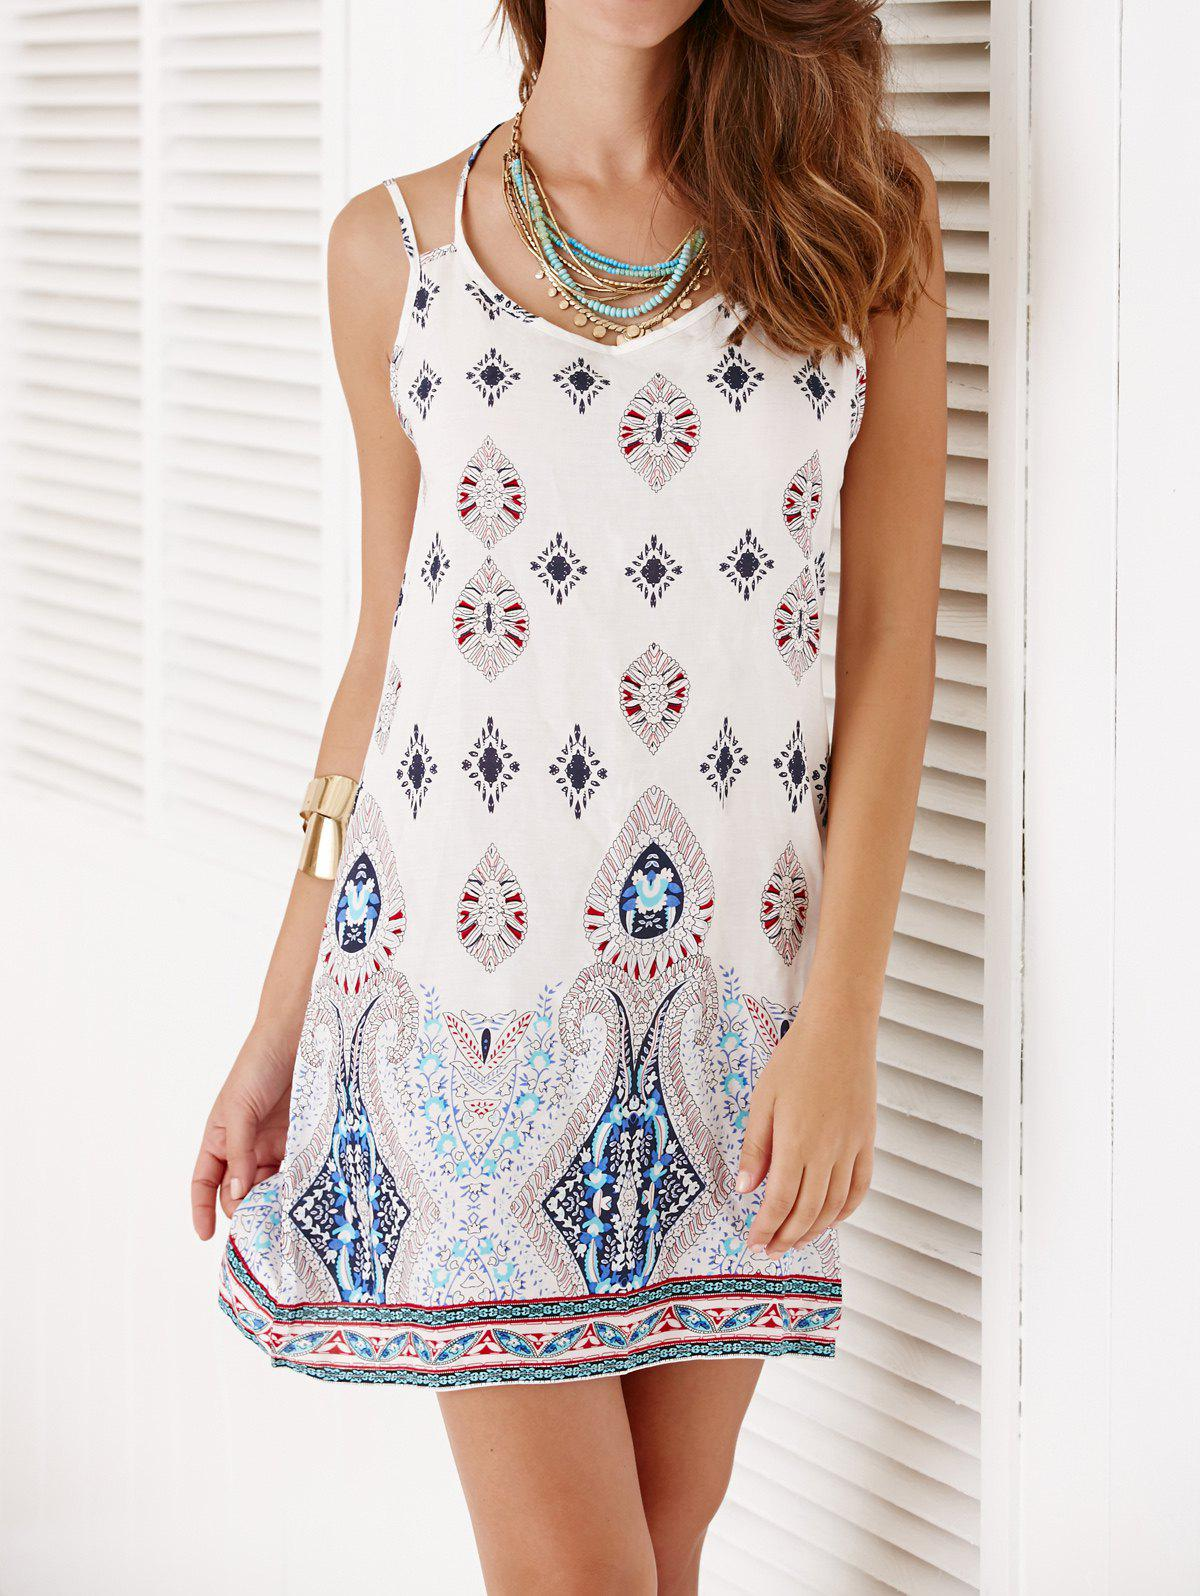 Backless Spaghetti Strap Tribal Print Dress - WHITE XL